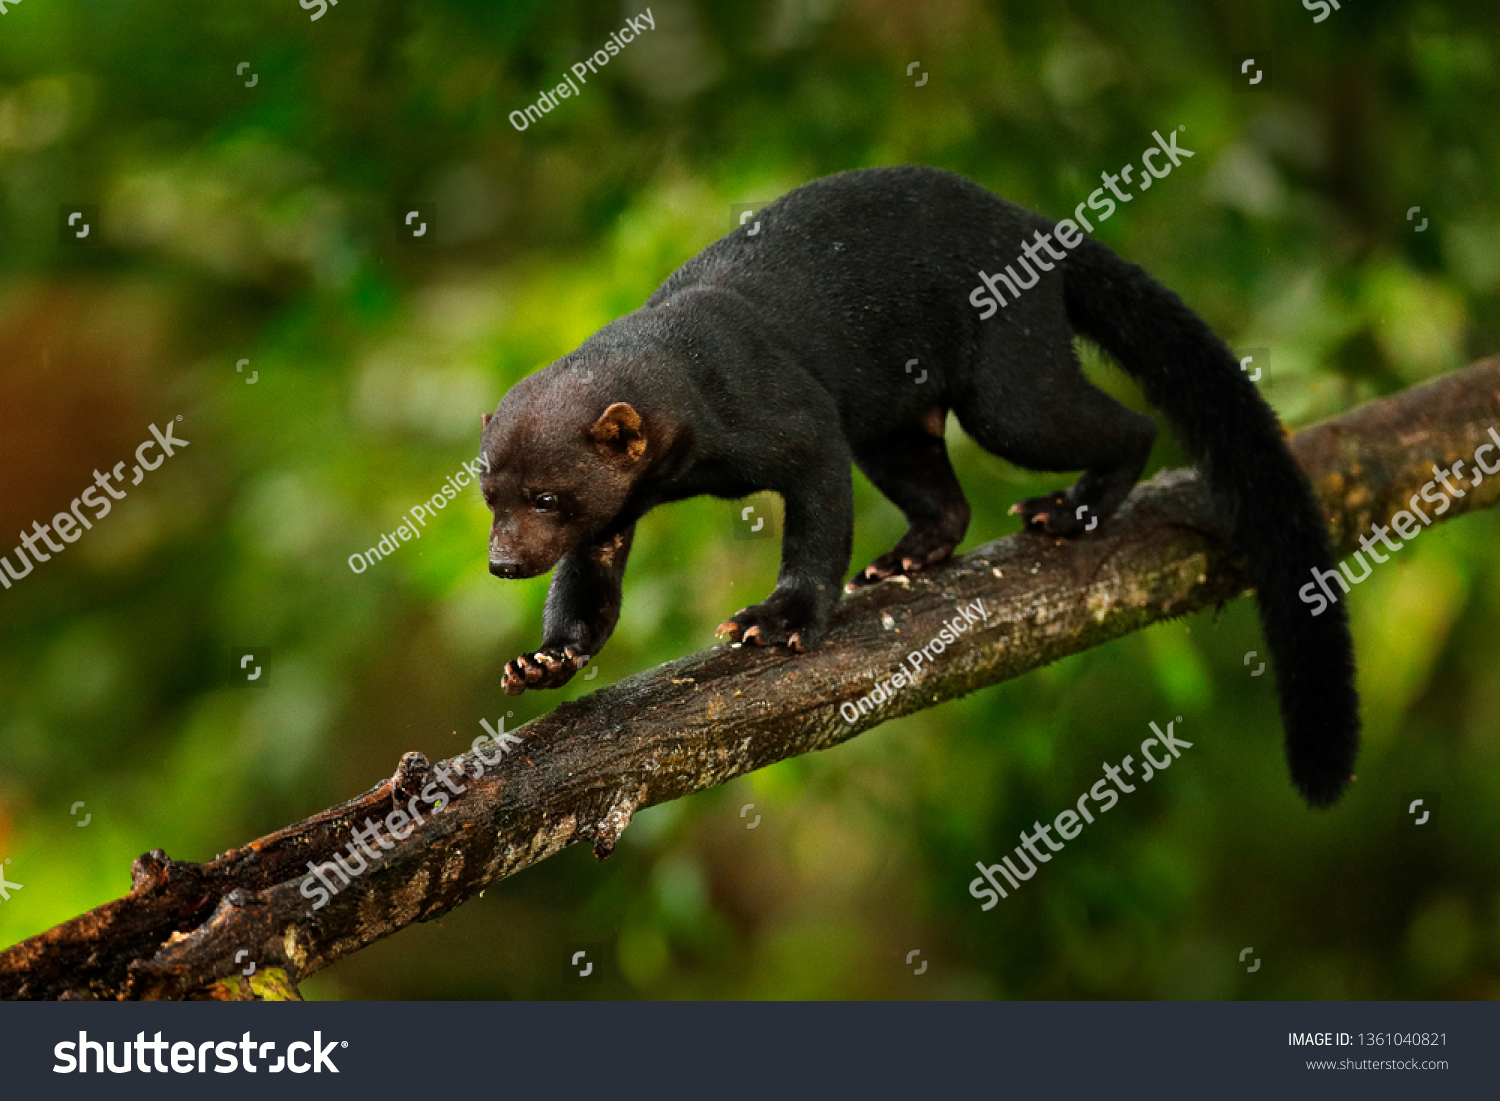 Tayra, Eira barbara, omnivorous animal from the weasel family. Tayra hidden in tropic forest, sitting on the green tree. Wildlife scene from nature, Costa Rica nature. Cute danger mammal in habitat.